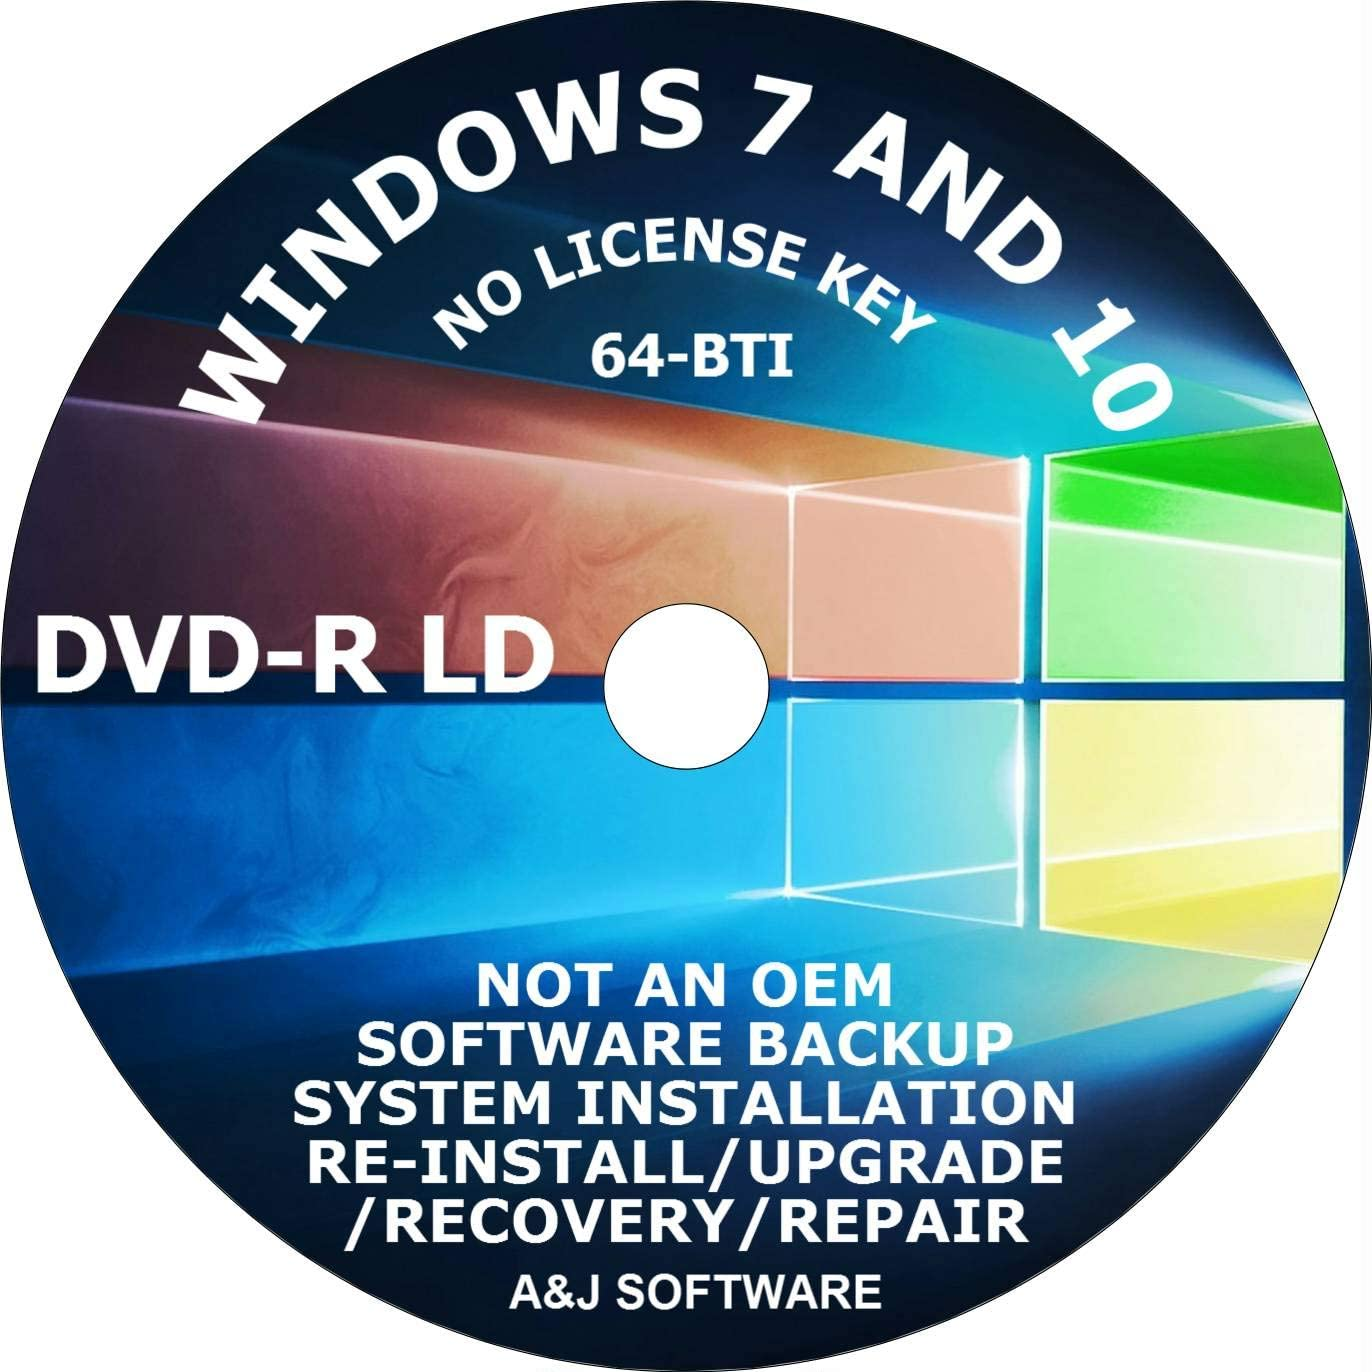 WINDOWS 7 10 DVD SUITE SET. RECOVERY 64-BIT FIX Outstanding FACTORY Special Campaign FRESH RE